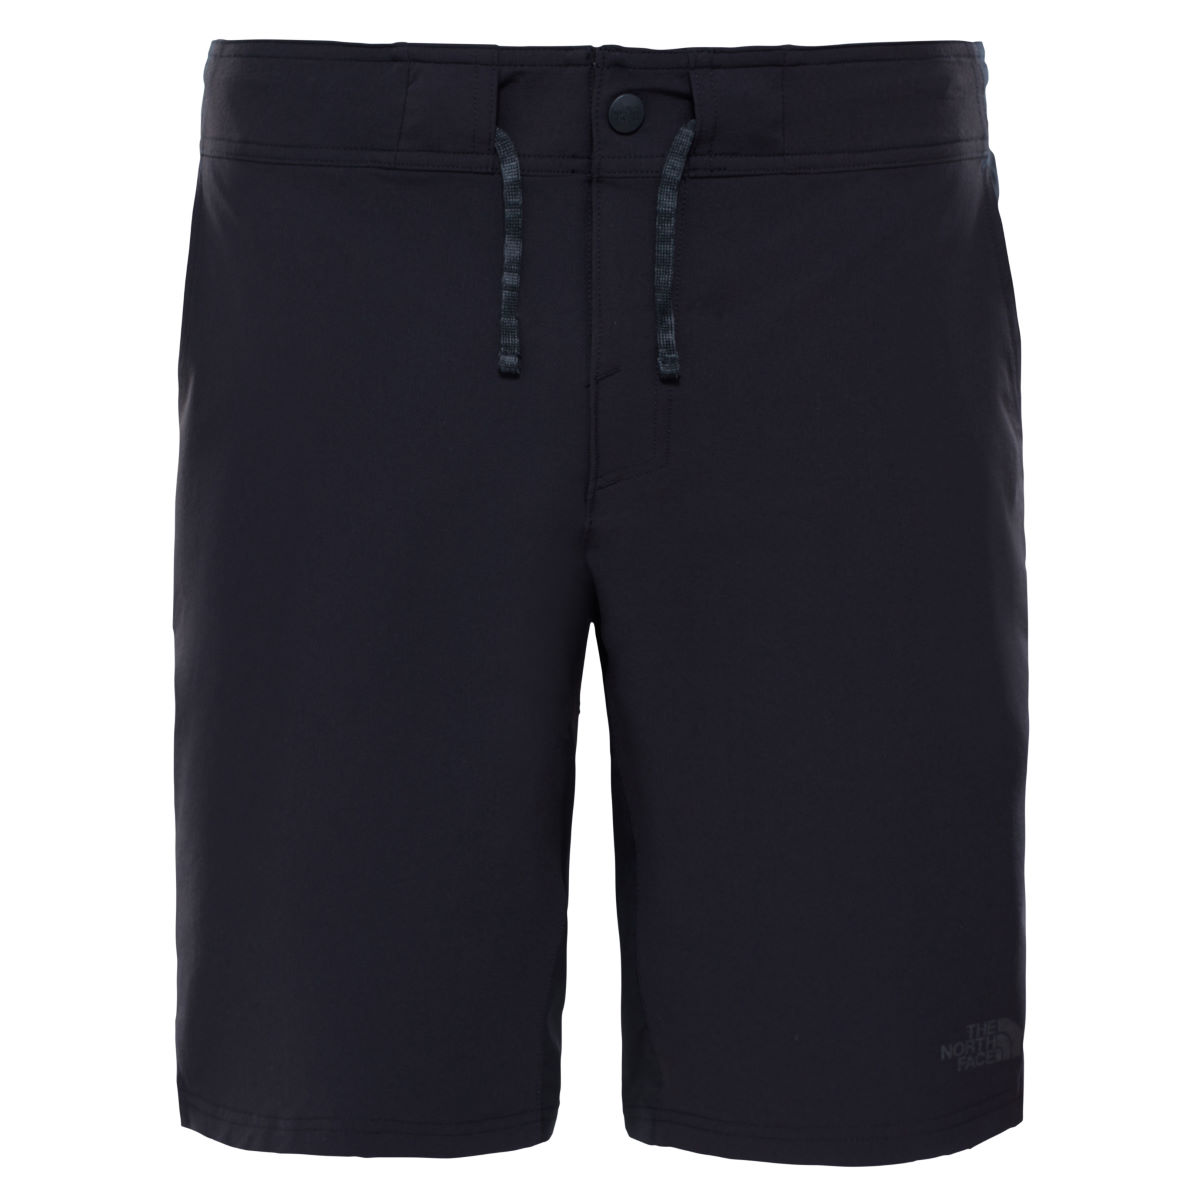 Bermudas The North Face Kilowatt - Pantalones cortos